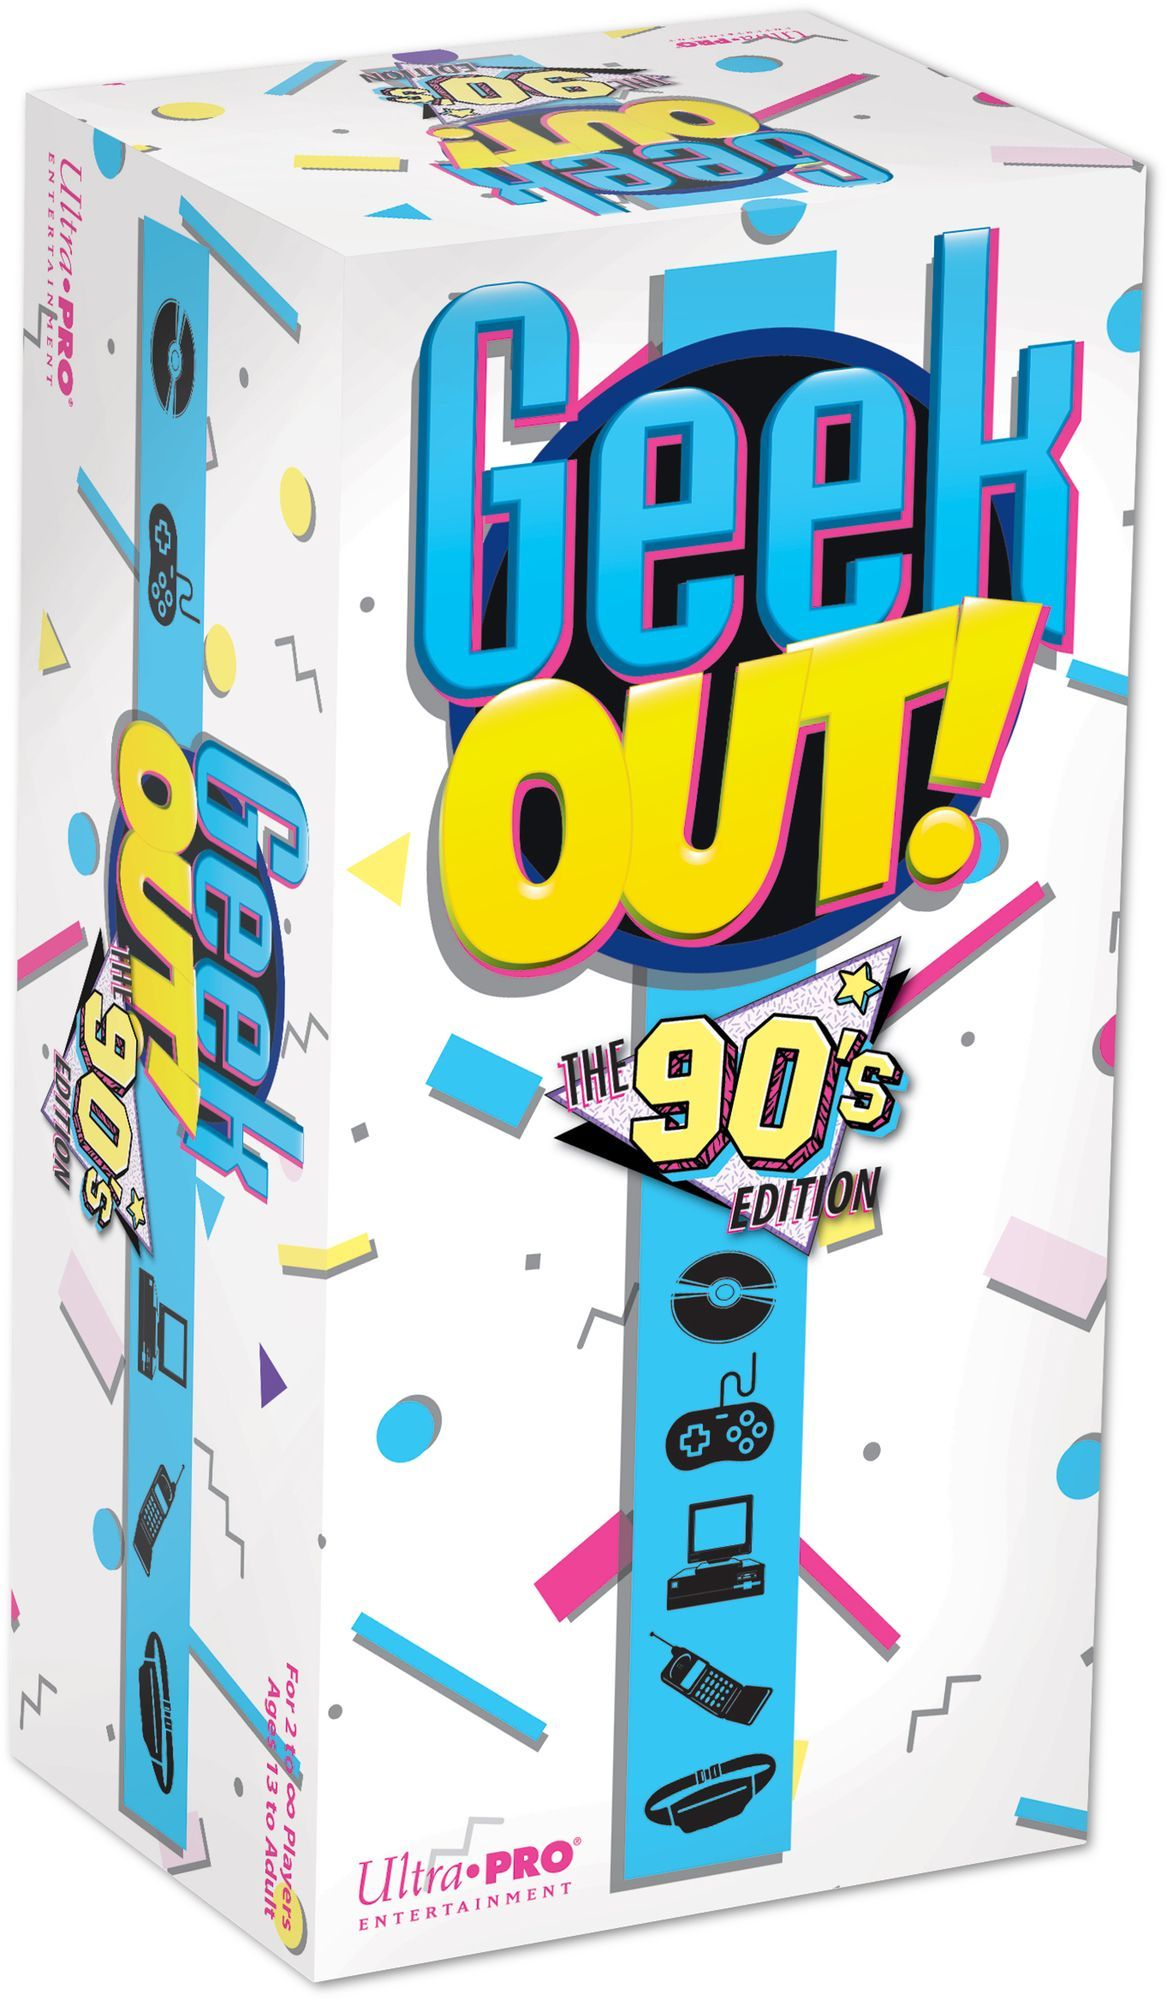 Geek Out 90s Edition